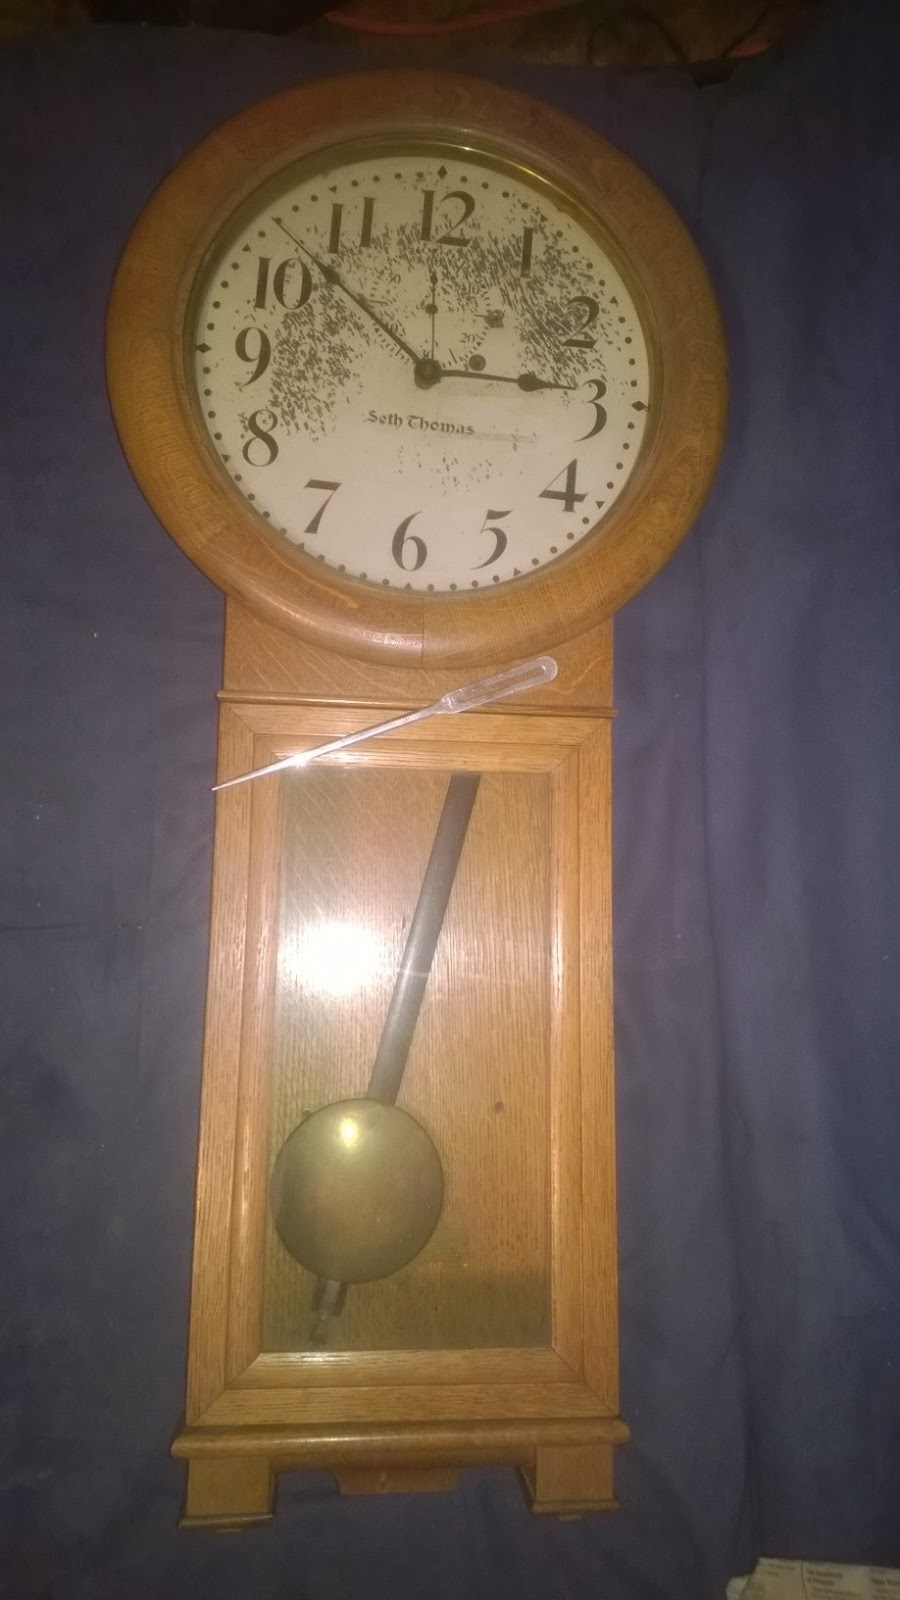 Mikes clock repair suspension spring was broken pivot holes were warn broken weight cable and the pendulum bob needed a little polish the clock was missing the weight amipublicfo Choice Image